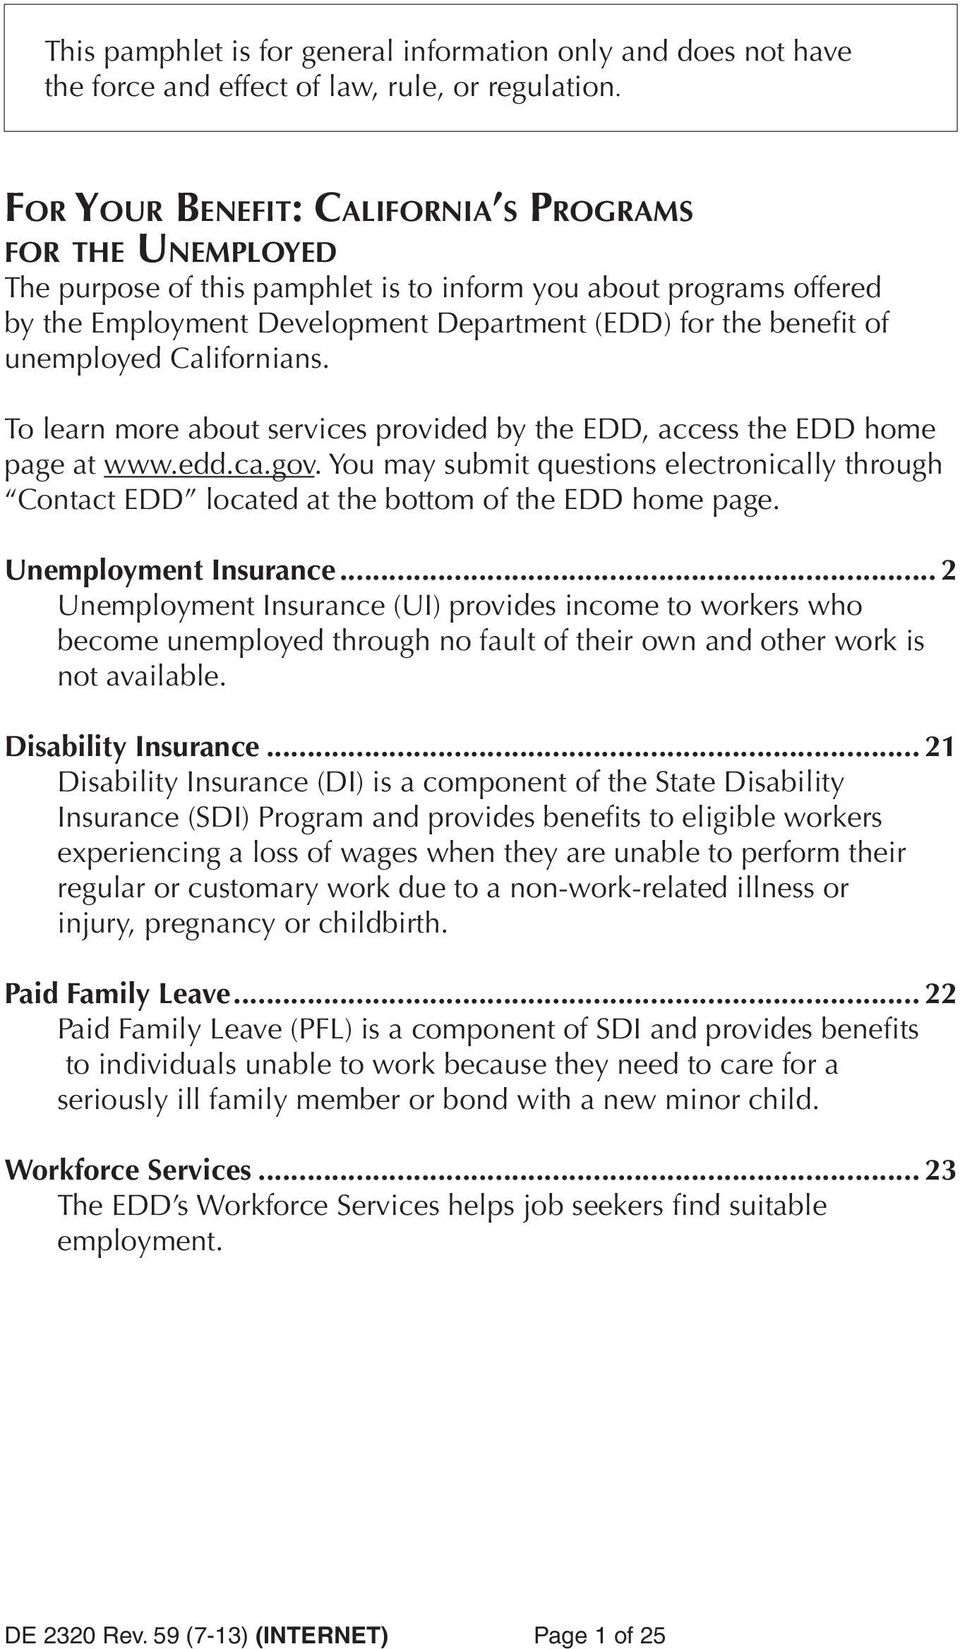 unemployed Californians. To learn more about services provided by the EDD, access the EDD home page at www.edd.ca.gov.